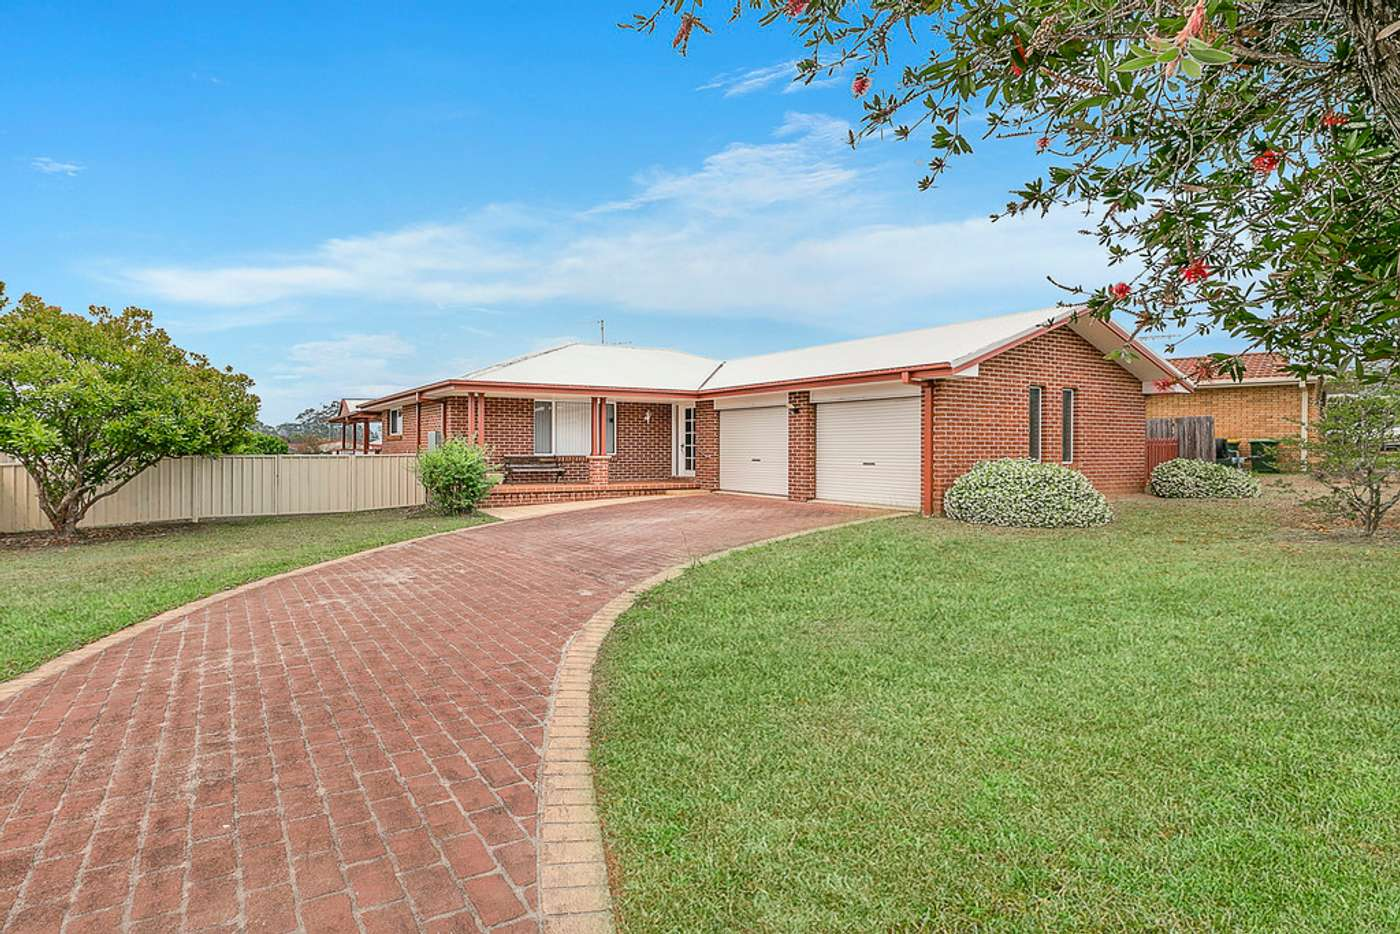 Main view of Homely house listing, 74 Colonial Circuit, Wauchope NSW 2446